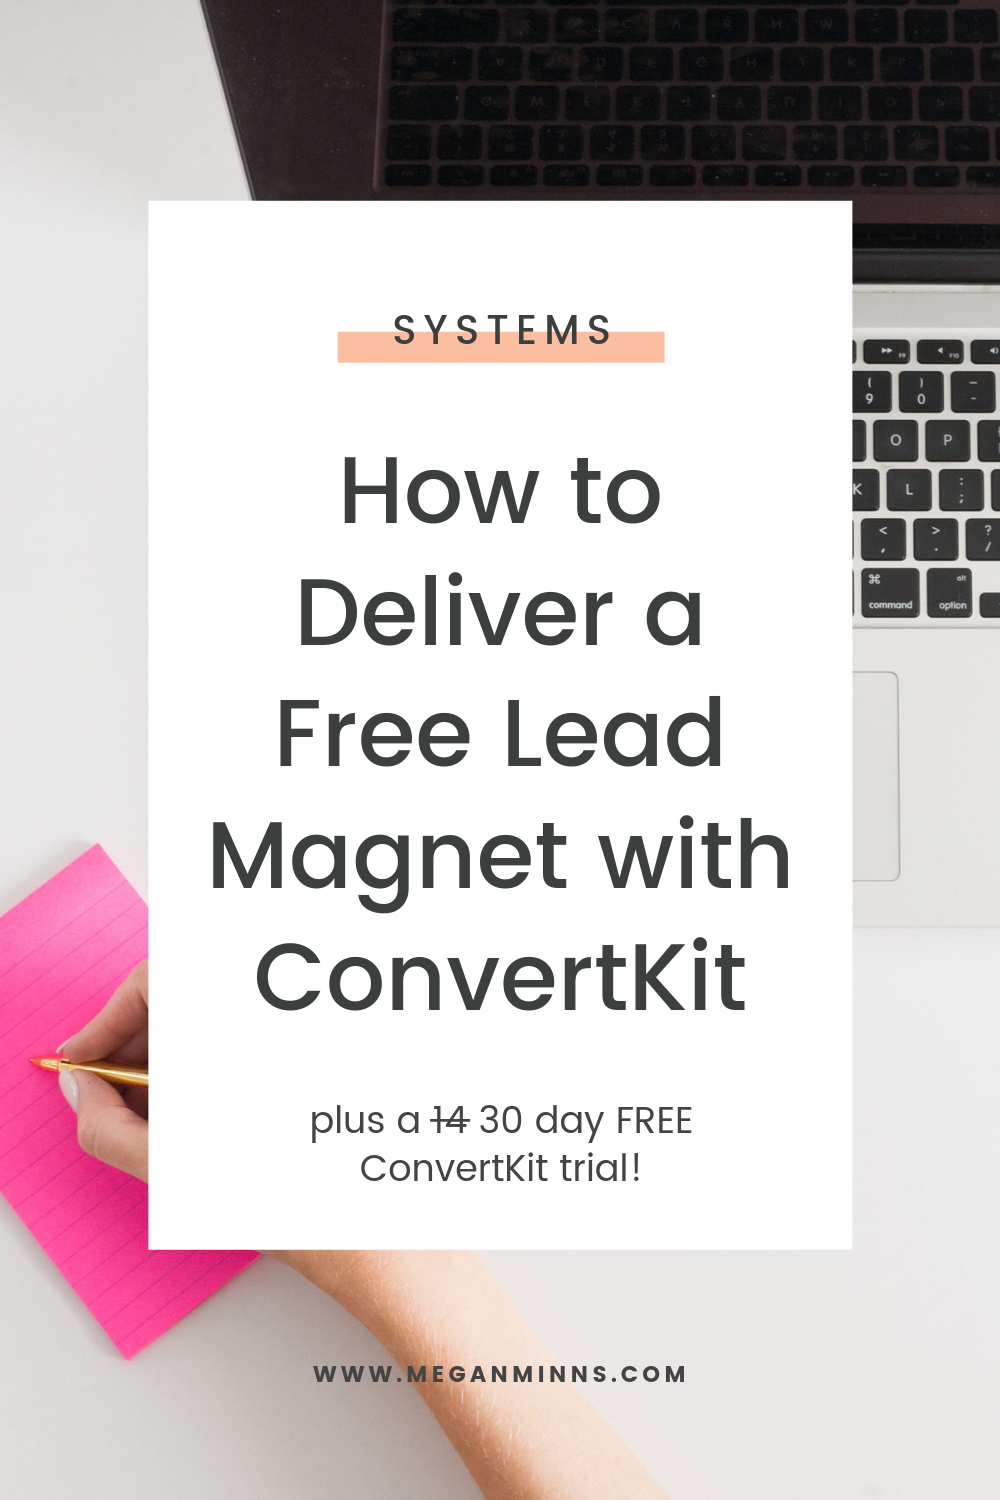 In this updated ConvertKit Tutorial 2019, you'll get a step by step on exactly how to delivery a free lead magnet with ConvertKit. It's so easy to do!  Also, if you use my link to sign up for a free ConvertKit trial, you'll get 30 days for FREE instead of the standard 14. Hurry over and get your lead magnet set up in a flash.  FULL TUTORIAL HERE:  https://meganminns.com/blog/deliver-free-lead-magnet-convertkit